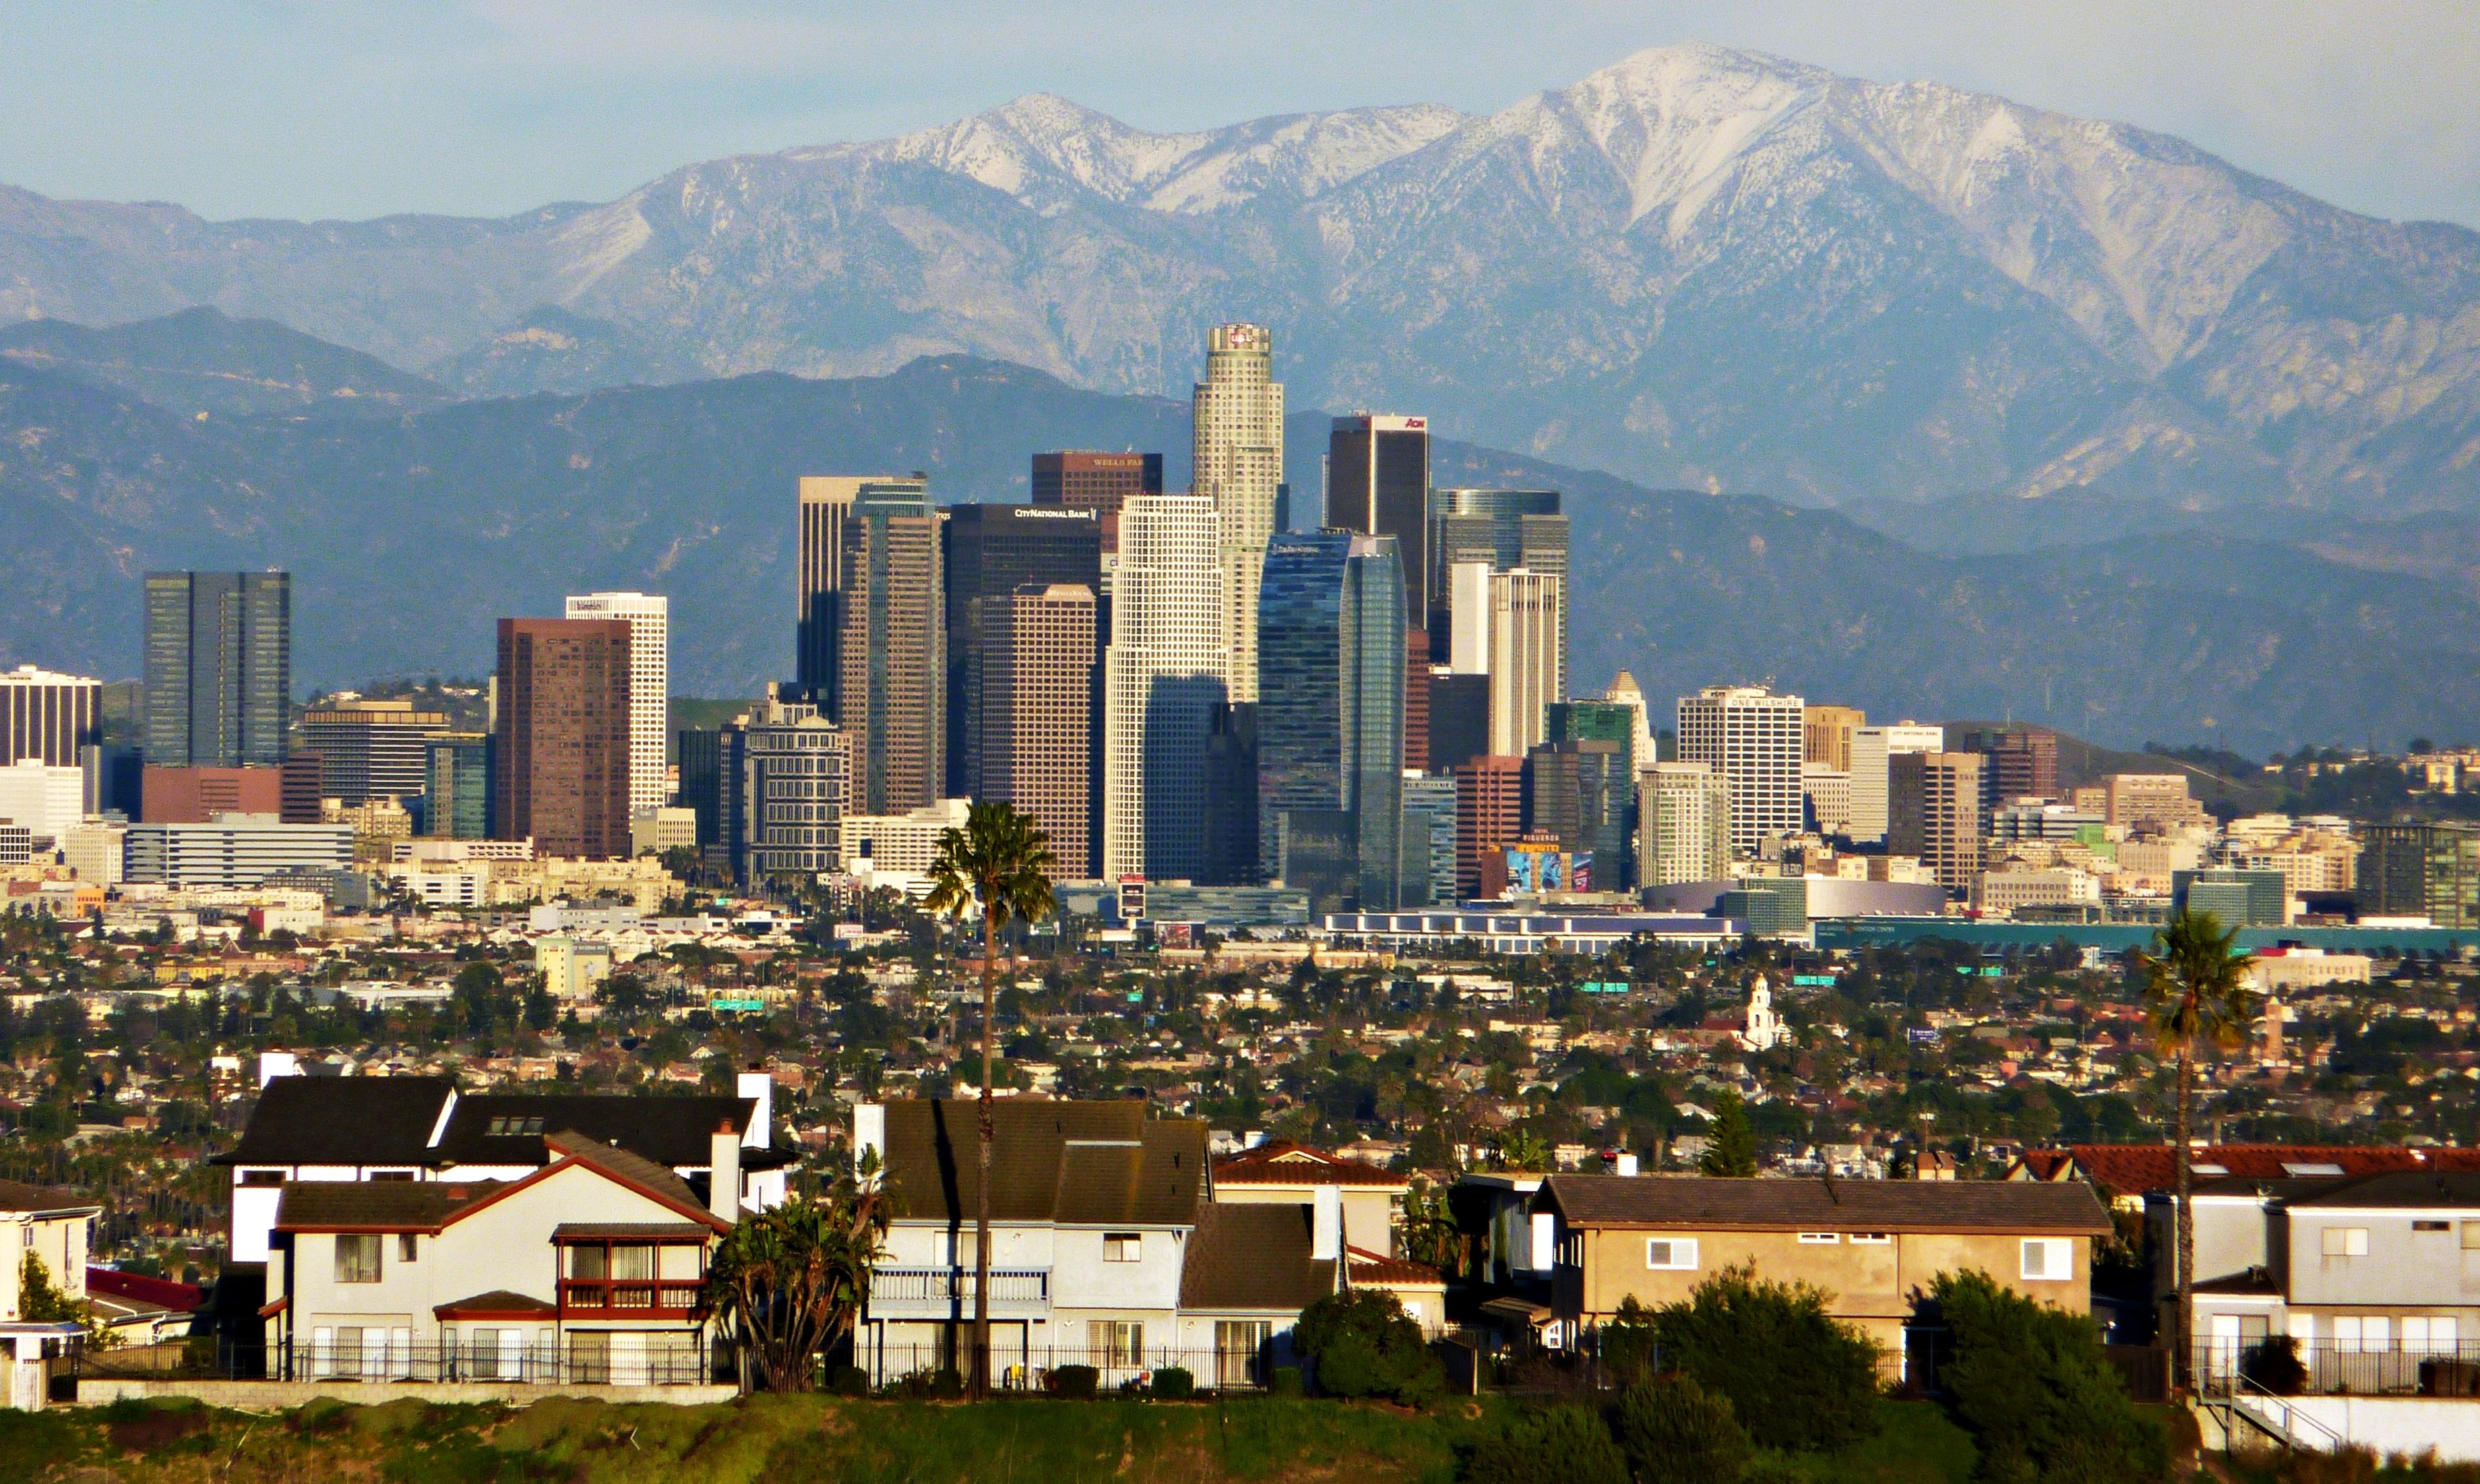 Th the largest city in california - Los Angeles Is The Second Largest City In The United States And Was Without A Football